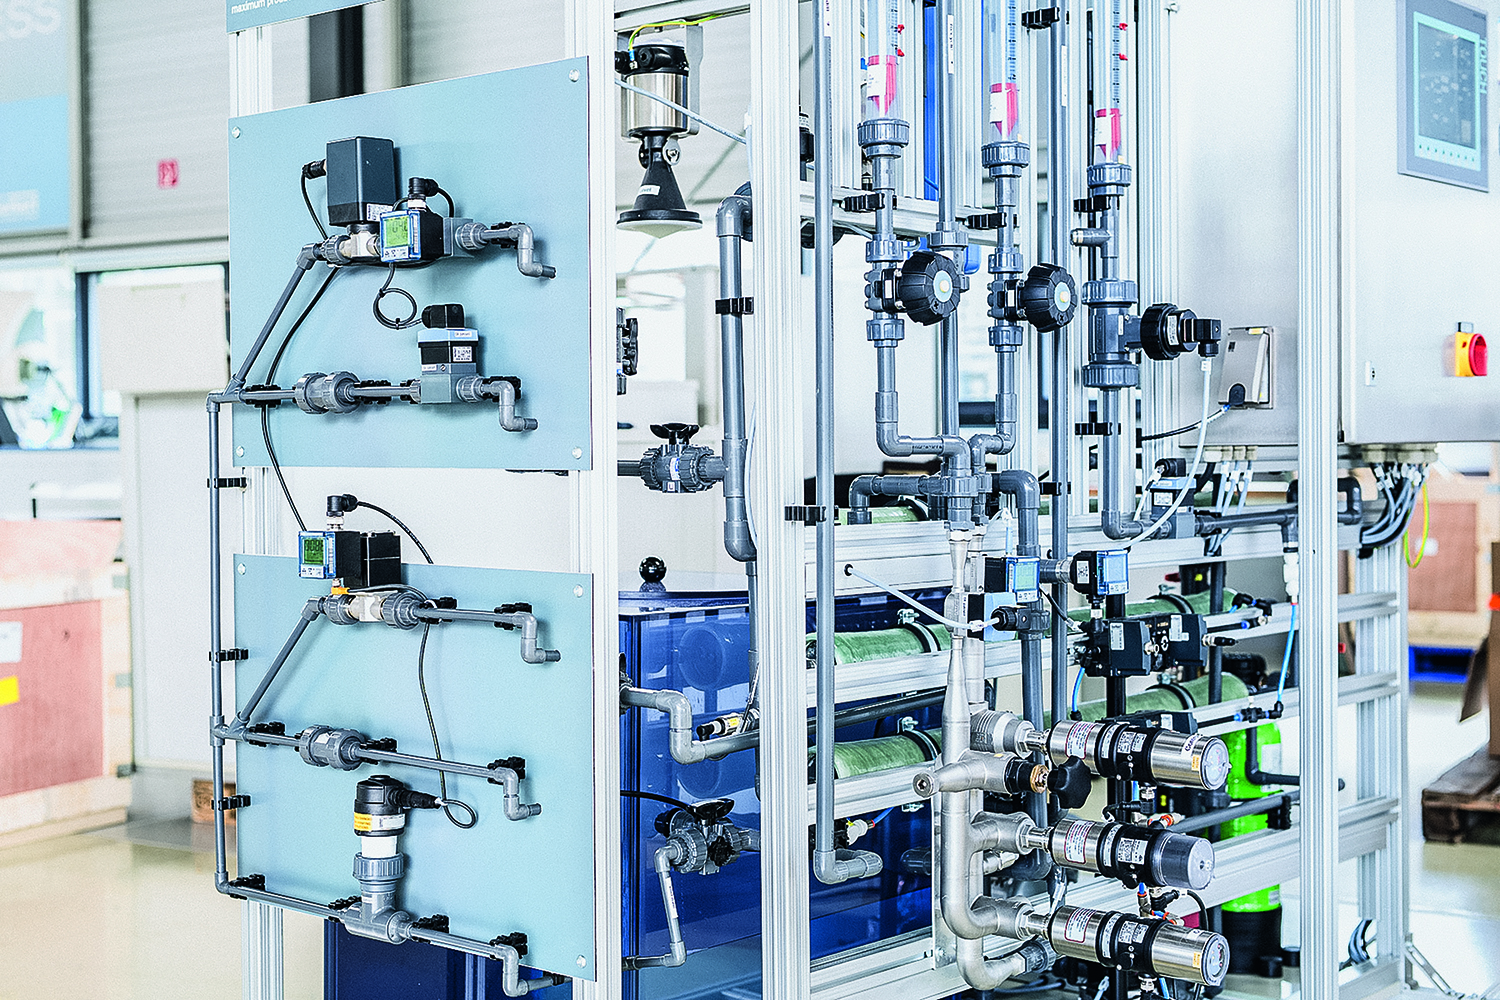 Improving process water quality through automation